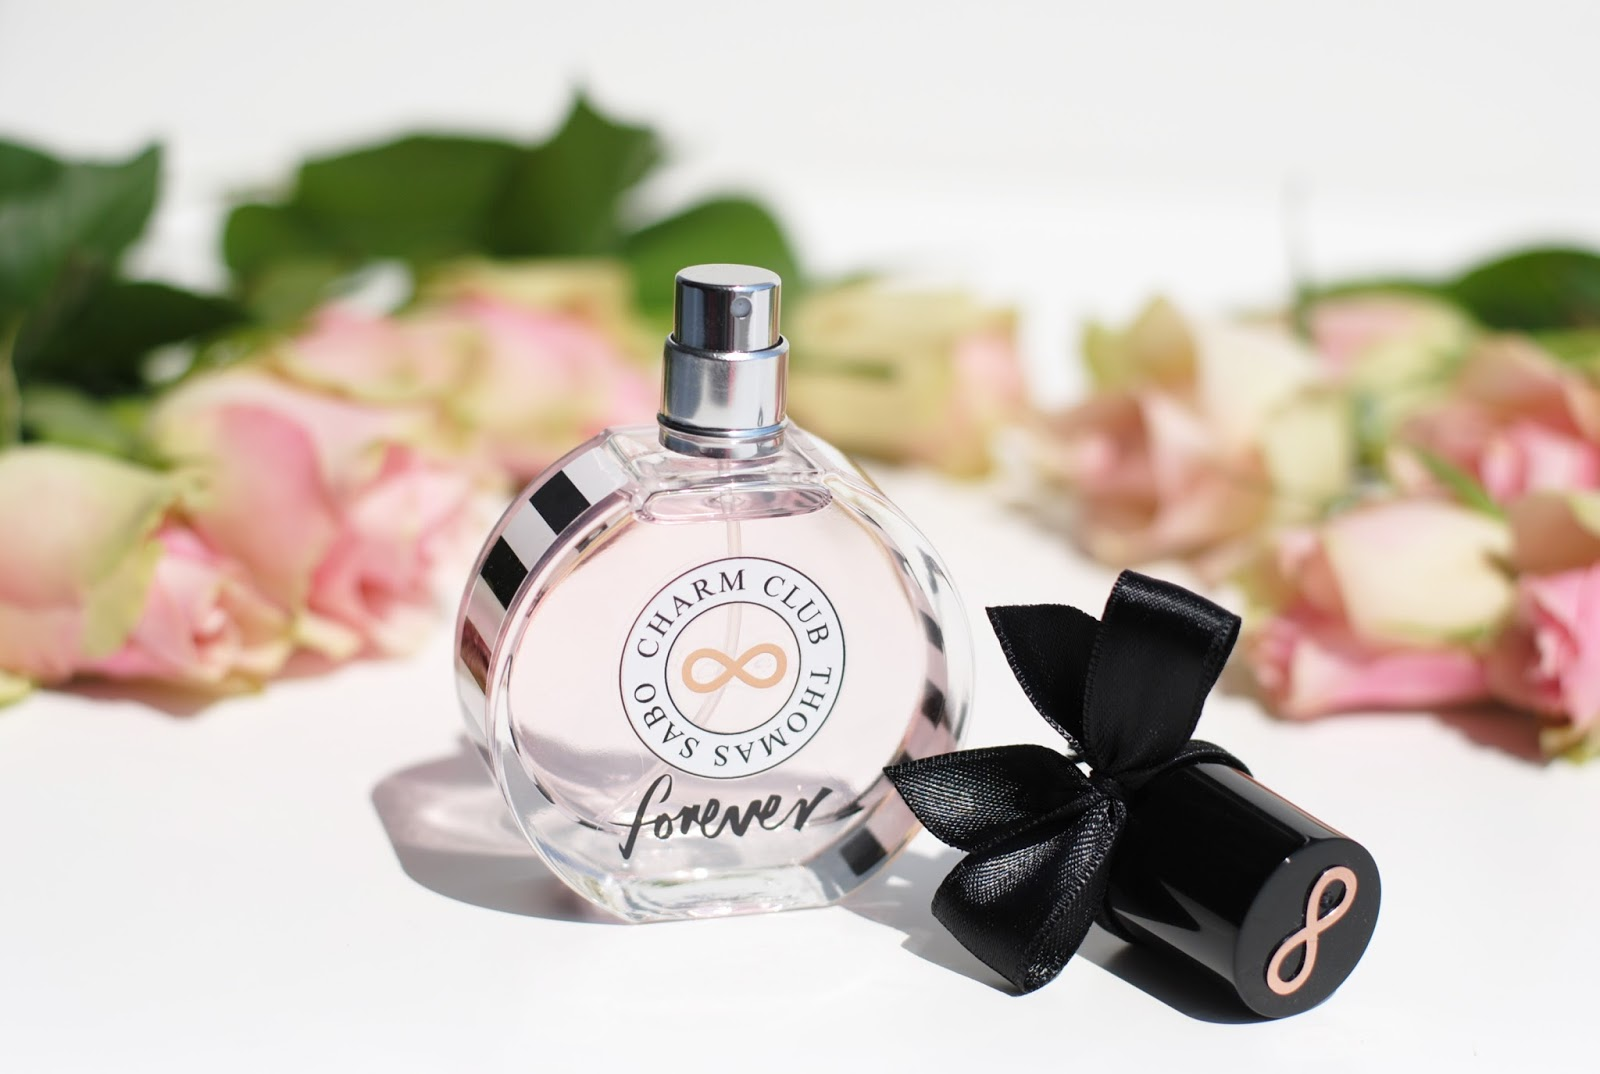 Thomas Sabo Perfume Review